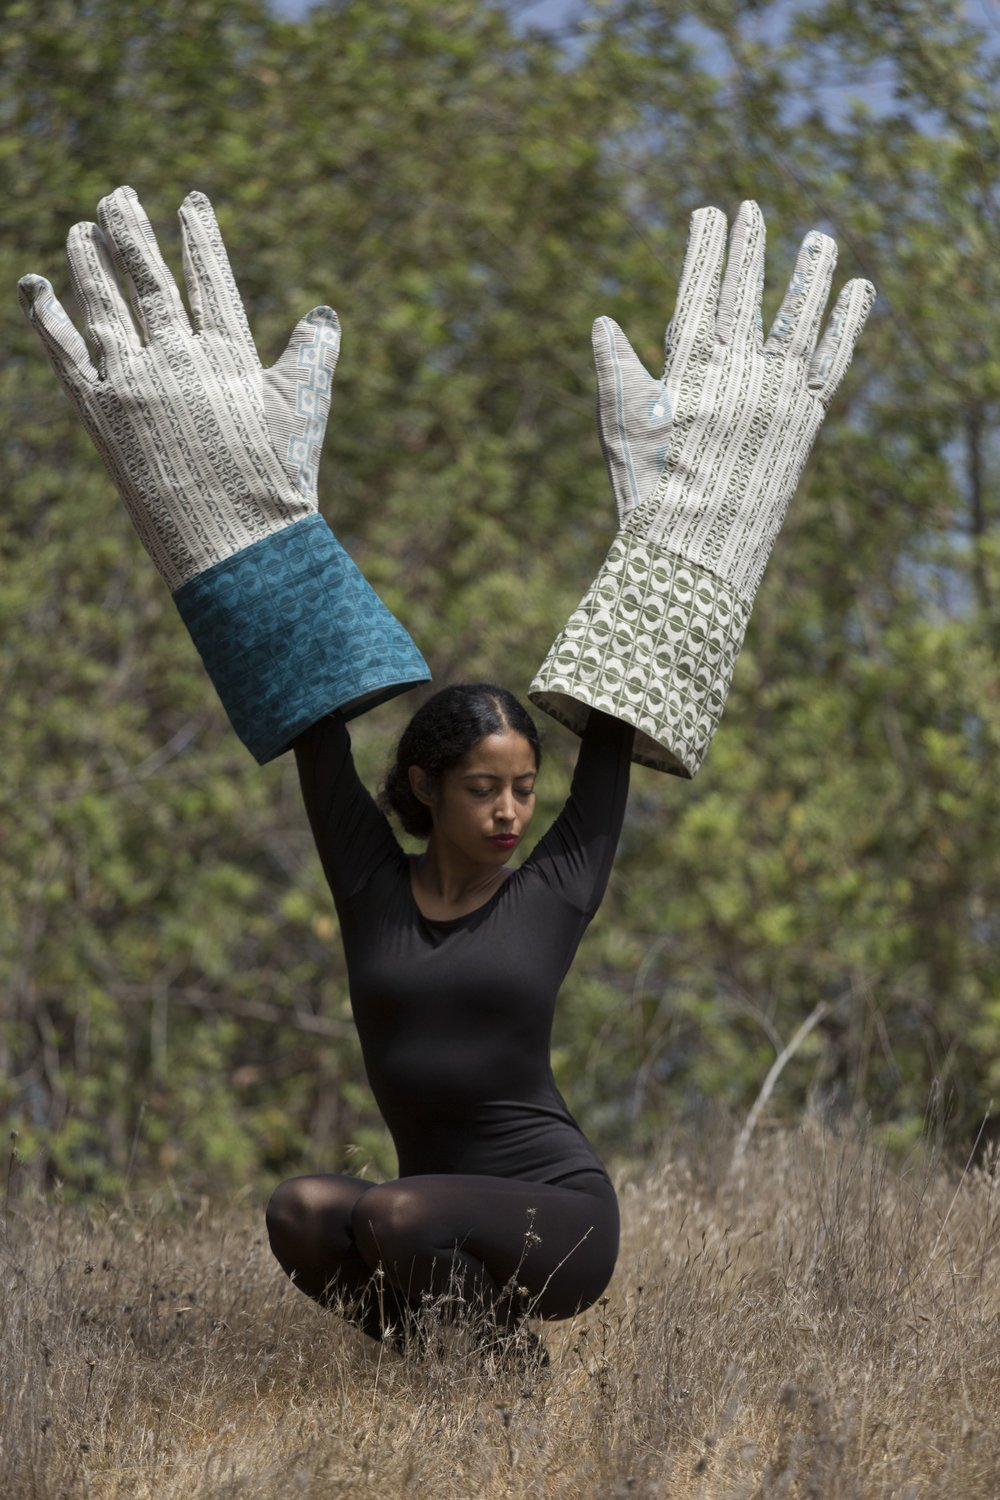 "- Inspired by the performance artist Sylvia Palacios Whitman's ""Passing Through"" (1977) as well as Bauhaus photography, these large-scale hands bring humor and history into the landscape.The hands are constructed from two BPT fabrics: SETO and ABUJA. Named for the inland sea that connects the islands of Japan, SETO is a series of intersections. East meets west, north meets south, ancient meets modern.Hand-screened in two shades of deep teal on Belgian linen, the hand-blocked grid holds open and opaque forms in balance.ABUJA is an exploration of color, cut, and repetition. Named for one of West Africa's busiest cultural hubs, the rhythmic pattern draws on a mix of West African and mid-century modern motifs."